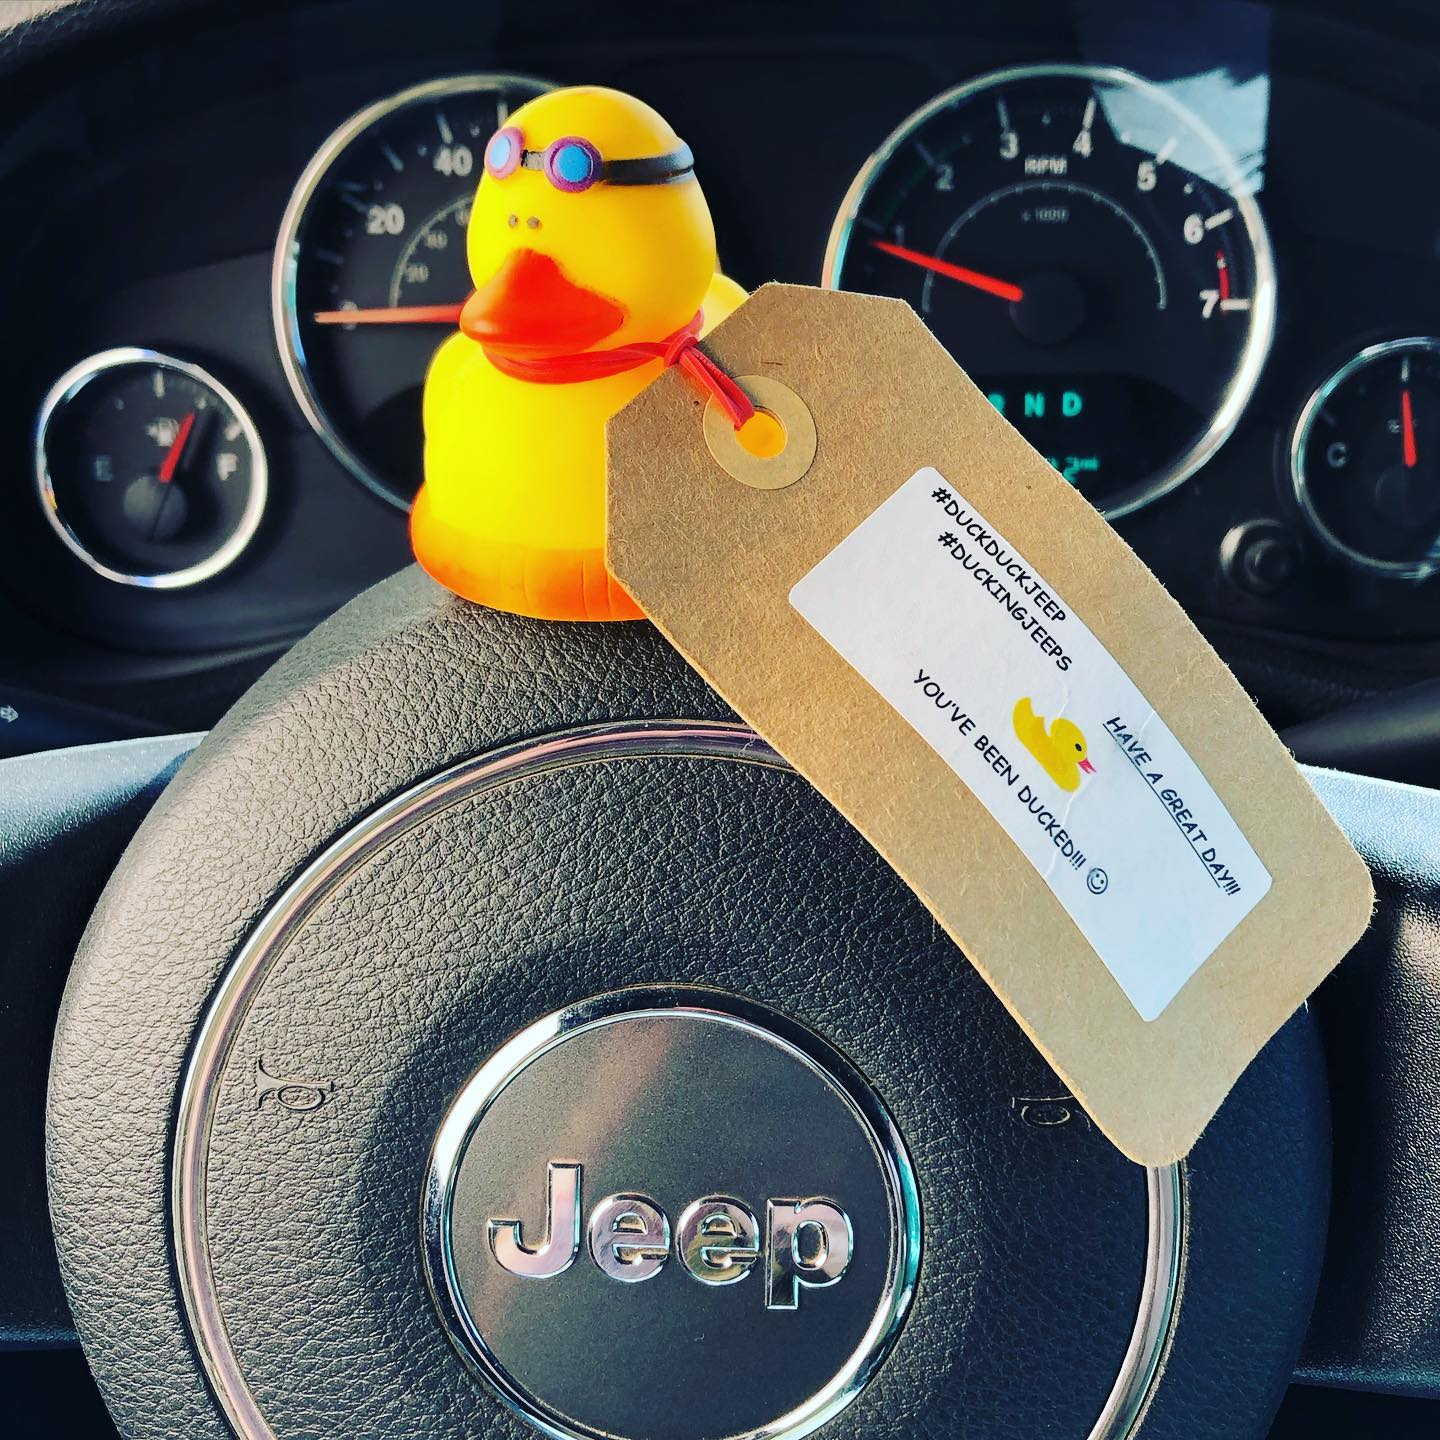 My first... in my Jeep, that is. In the literal hundreds I've received as a tattoo artist over the past 15 years. It's time for me to join a happy movement and pay it forward. #duckingjeeps #duckingjeep #duckingjeepsarkansas